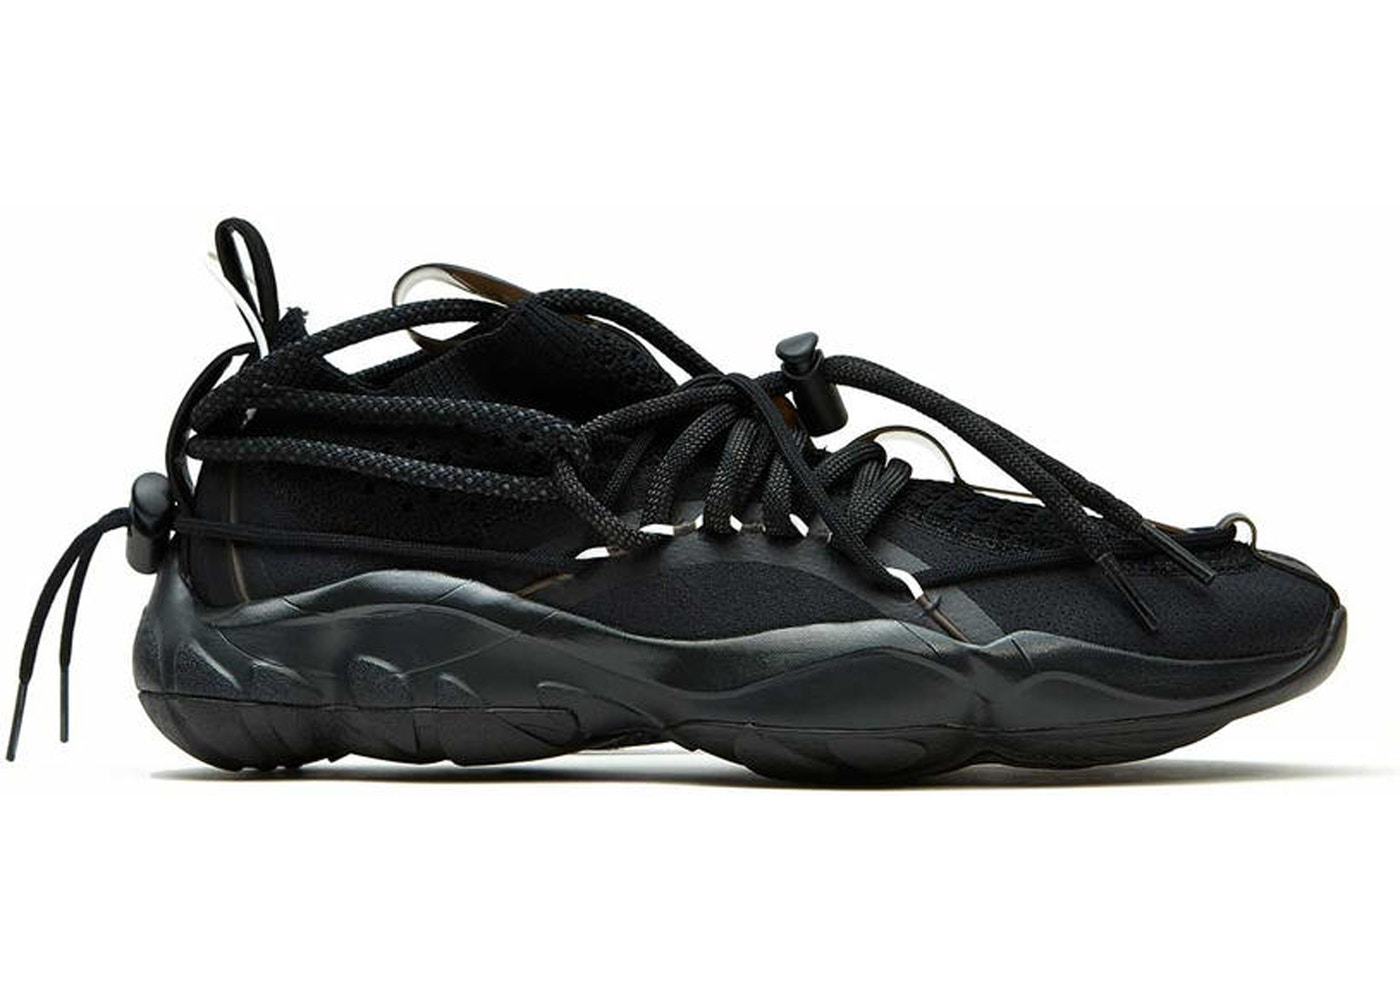 558cab84737e Sell. or Ask. Size  7.5. View All Bids. Reebok DMX Run Fusion Experiment  Pyer Moss Black